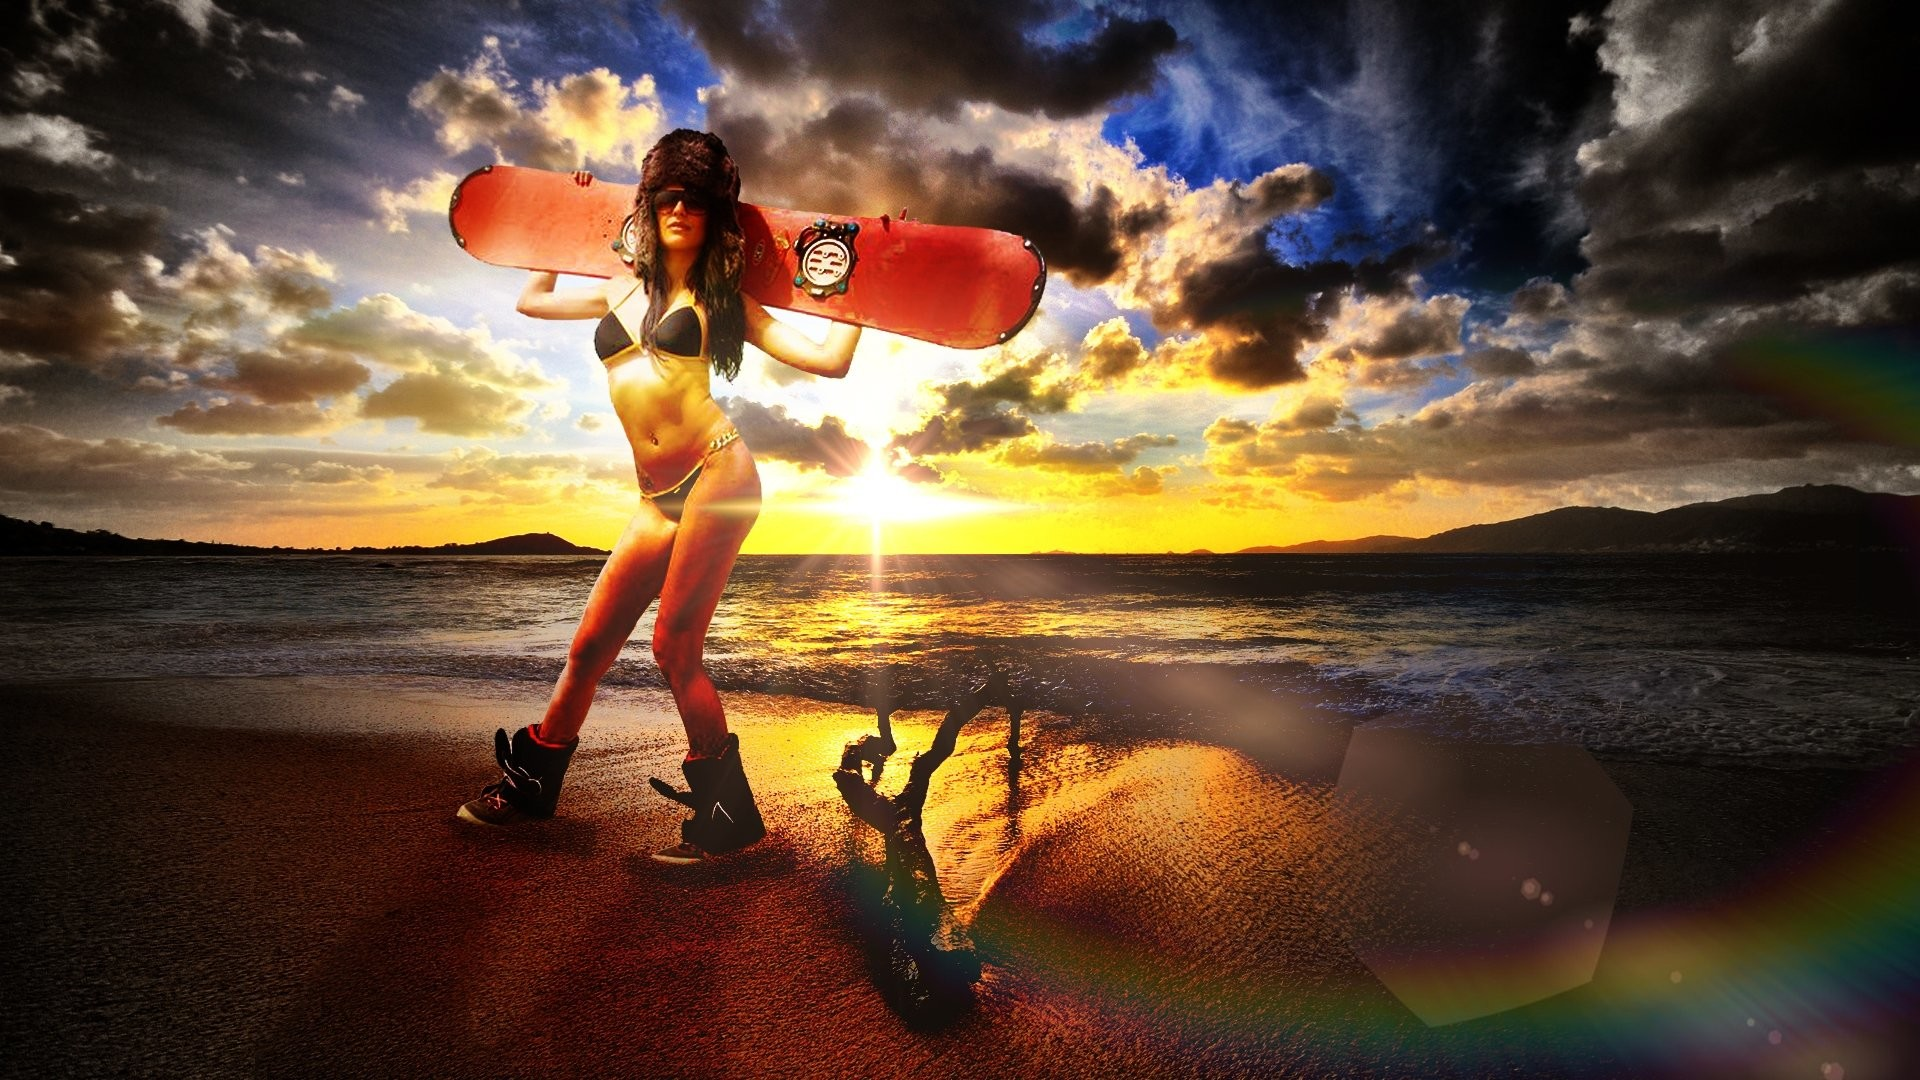 Res: 1920x1080, Surf Beach Girl Backgrounds.